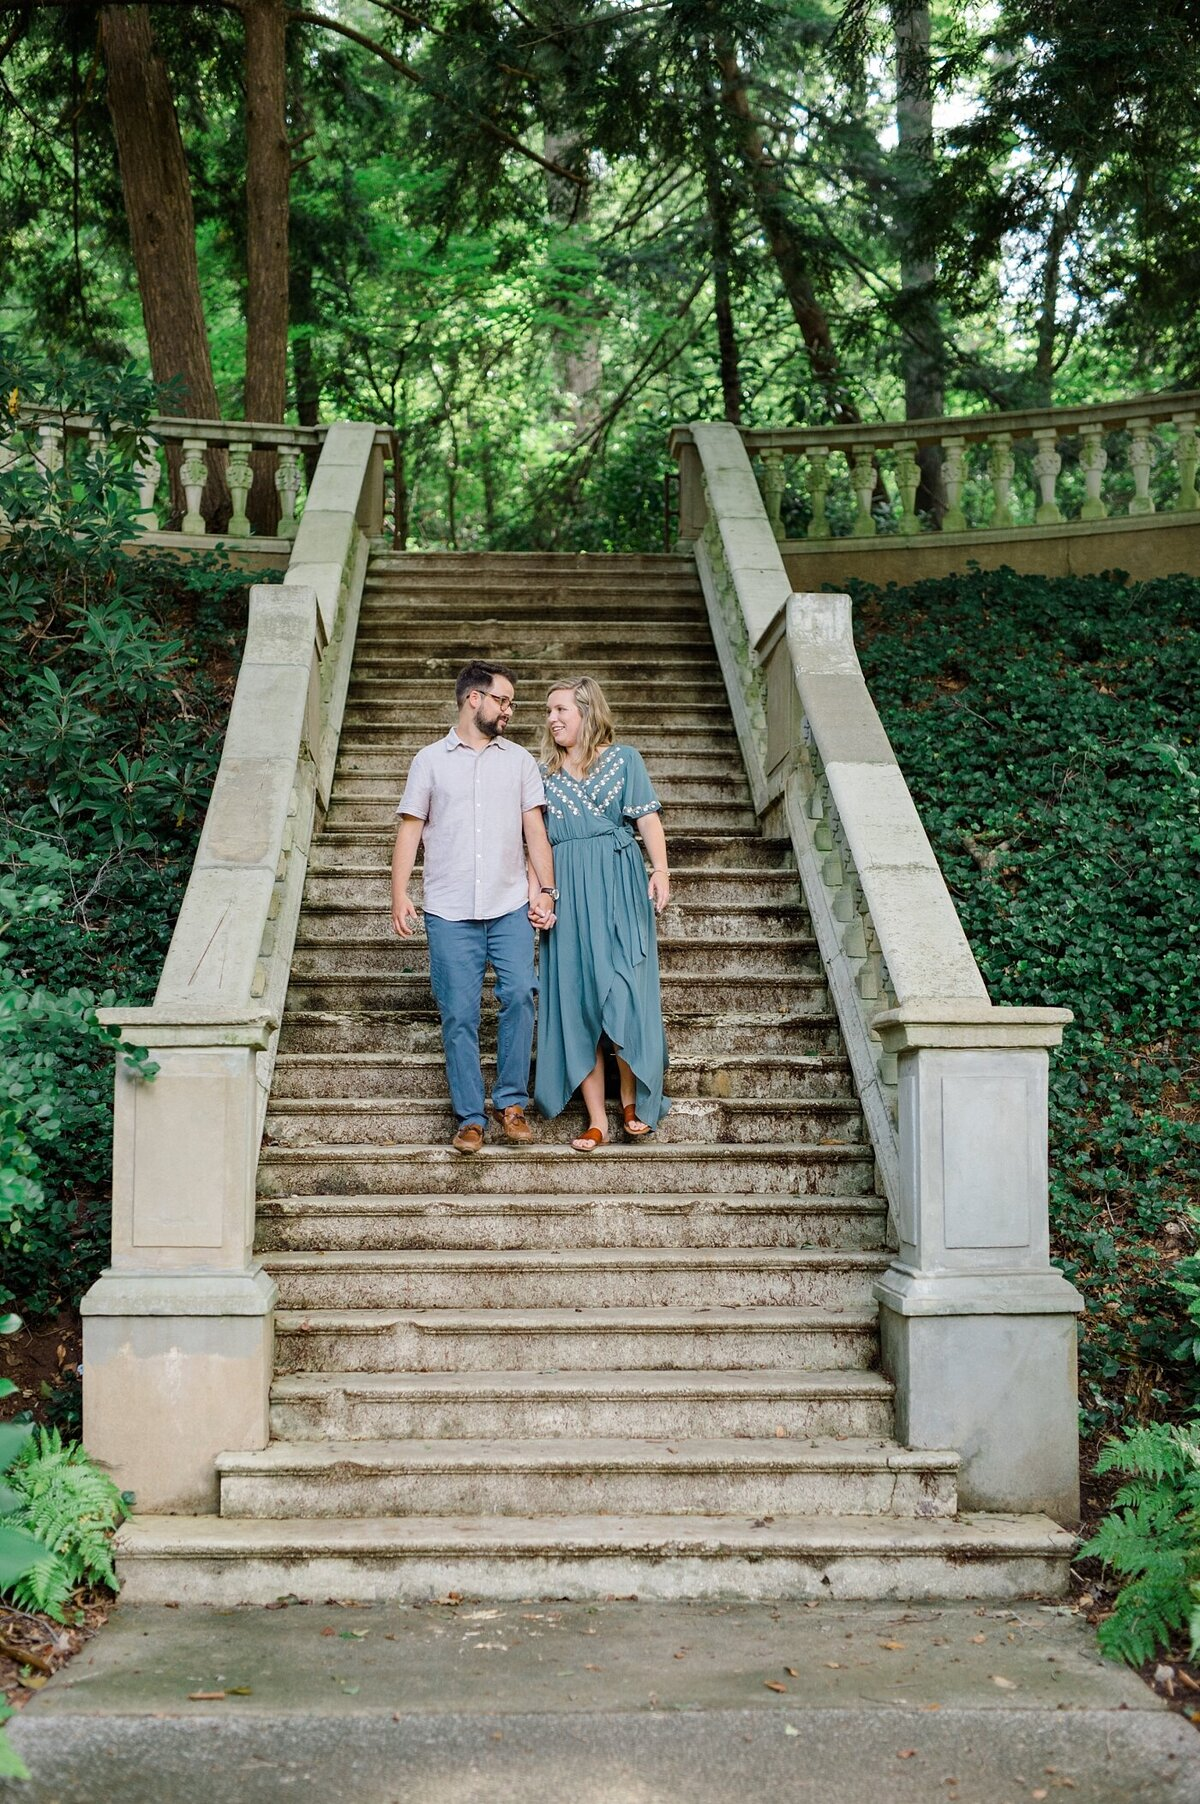 cator-woolford-gardens-engagement-wedding-photographer-laura-barnes-photo-shackelford-14